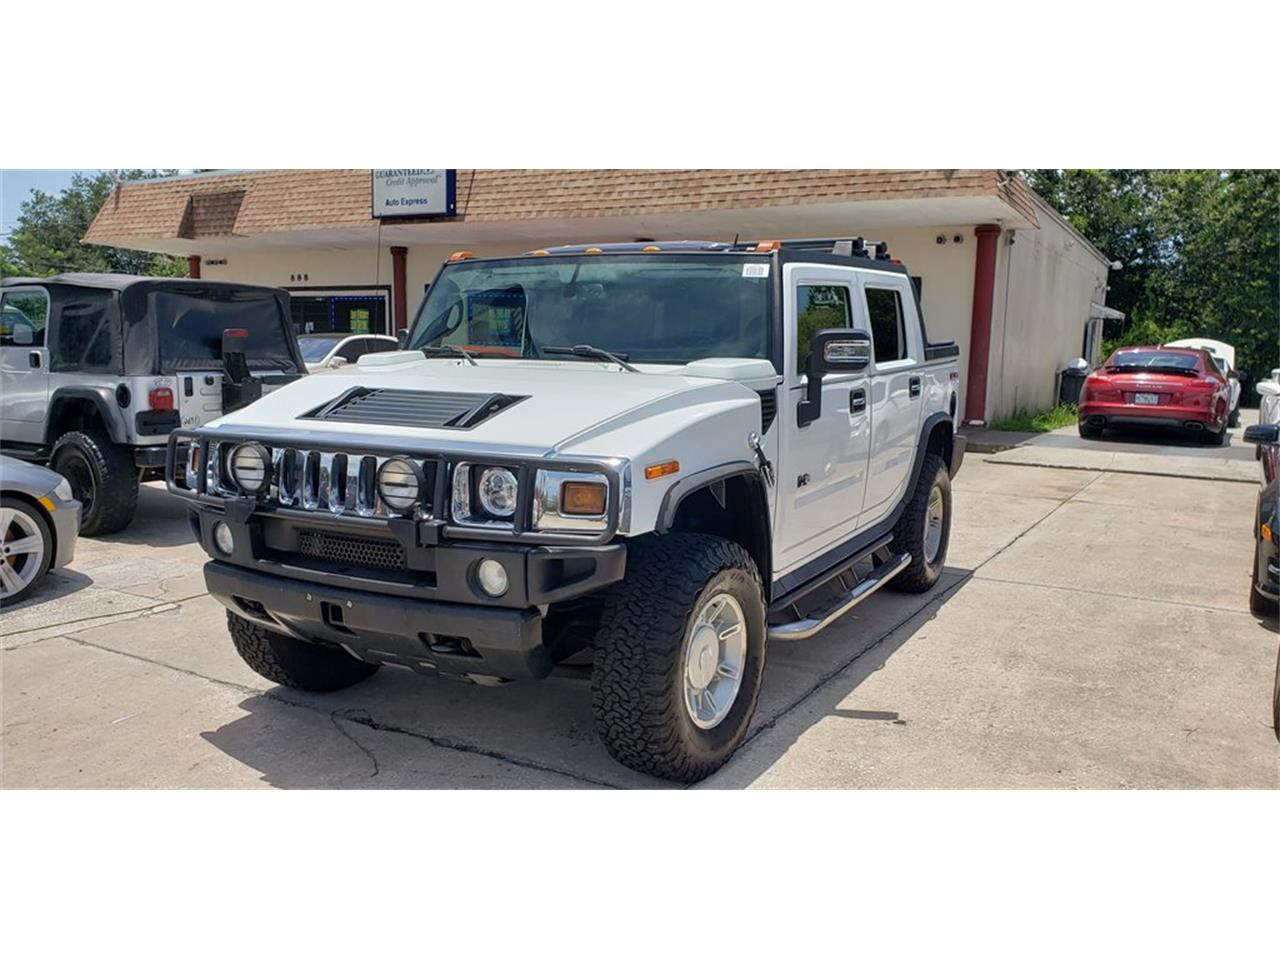 2007 Hummer H2 (CC-1239133) for sale in Orlando, Florida